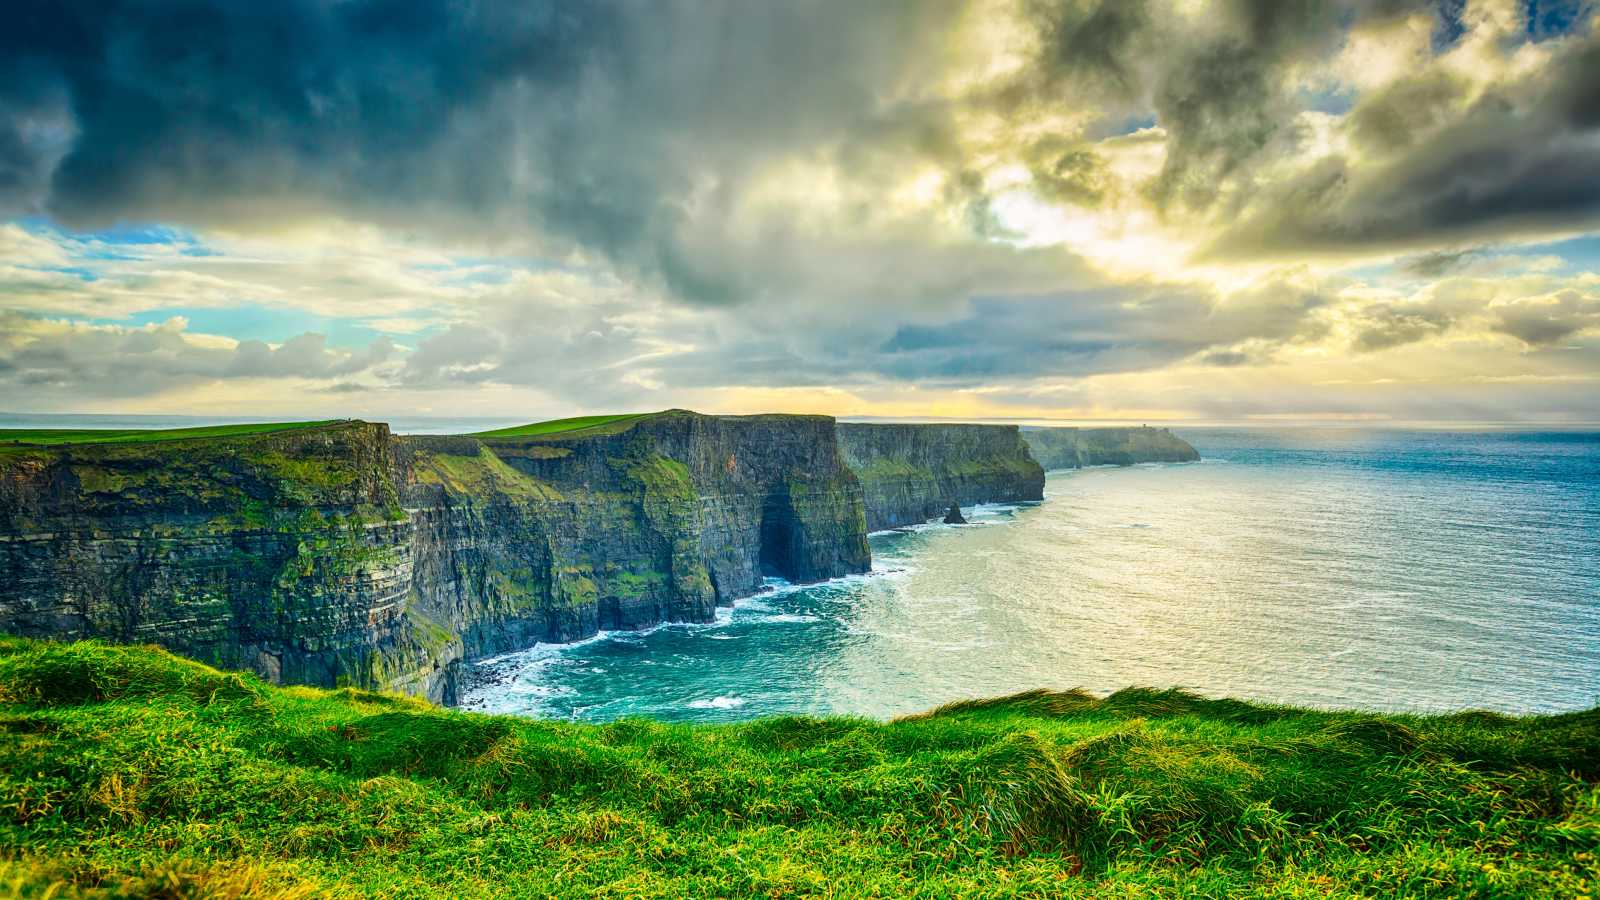 Europe, Ireland, Cliffs of Moher, grassy cliffs looking over the Atlantic Ocean.